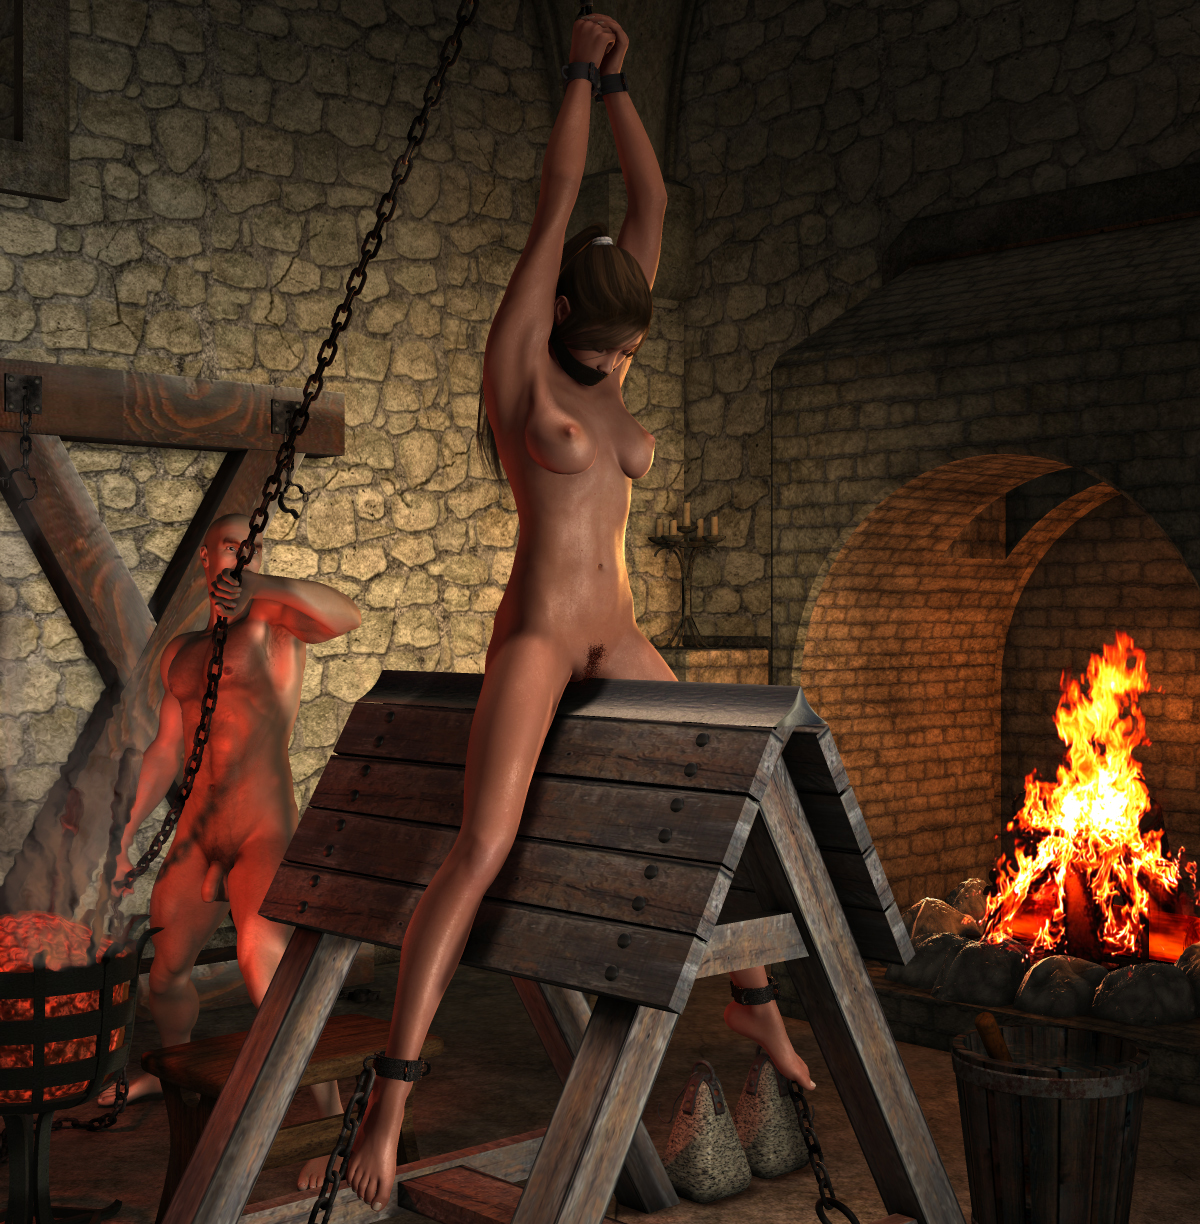 Medieval torture porno pics exposed thumbs